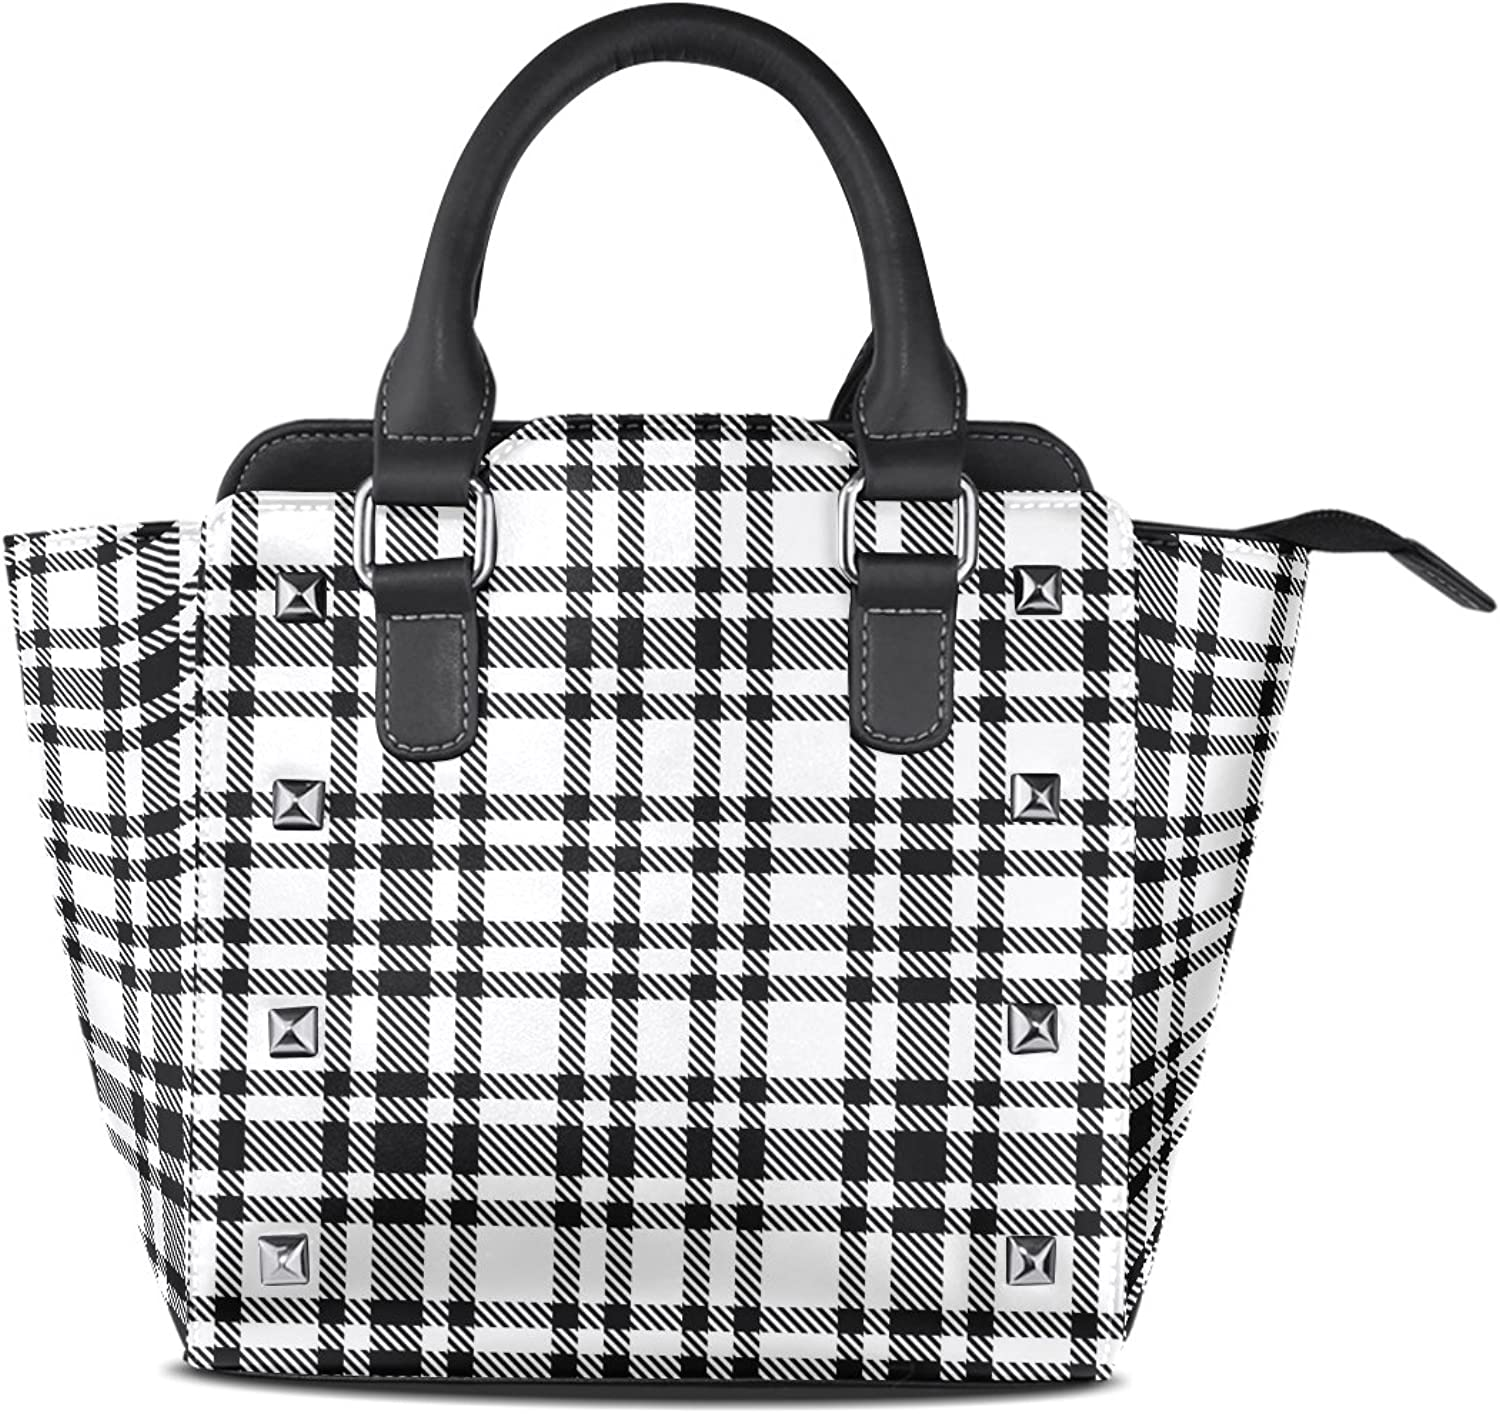 My Little Nest Women's Top Handle Satchel Handbag Classical Black and White Tartan Ladies PU Leather Shoulder Bag Crossbody Bag